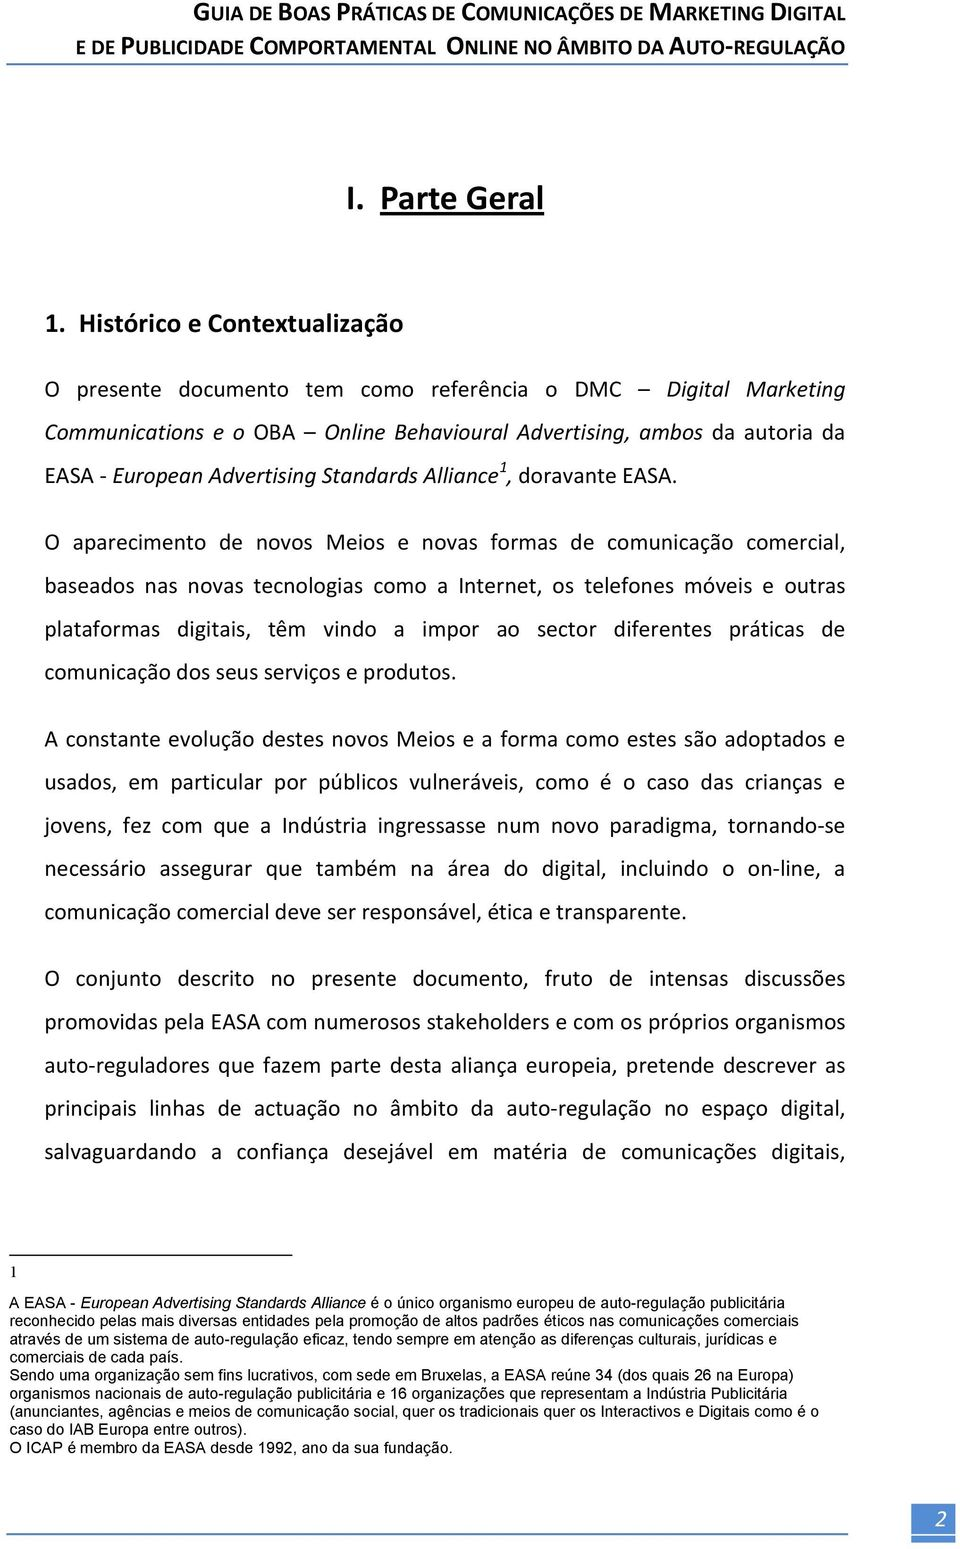 Standards Alliance 1, doravante EASA.